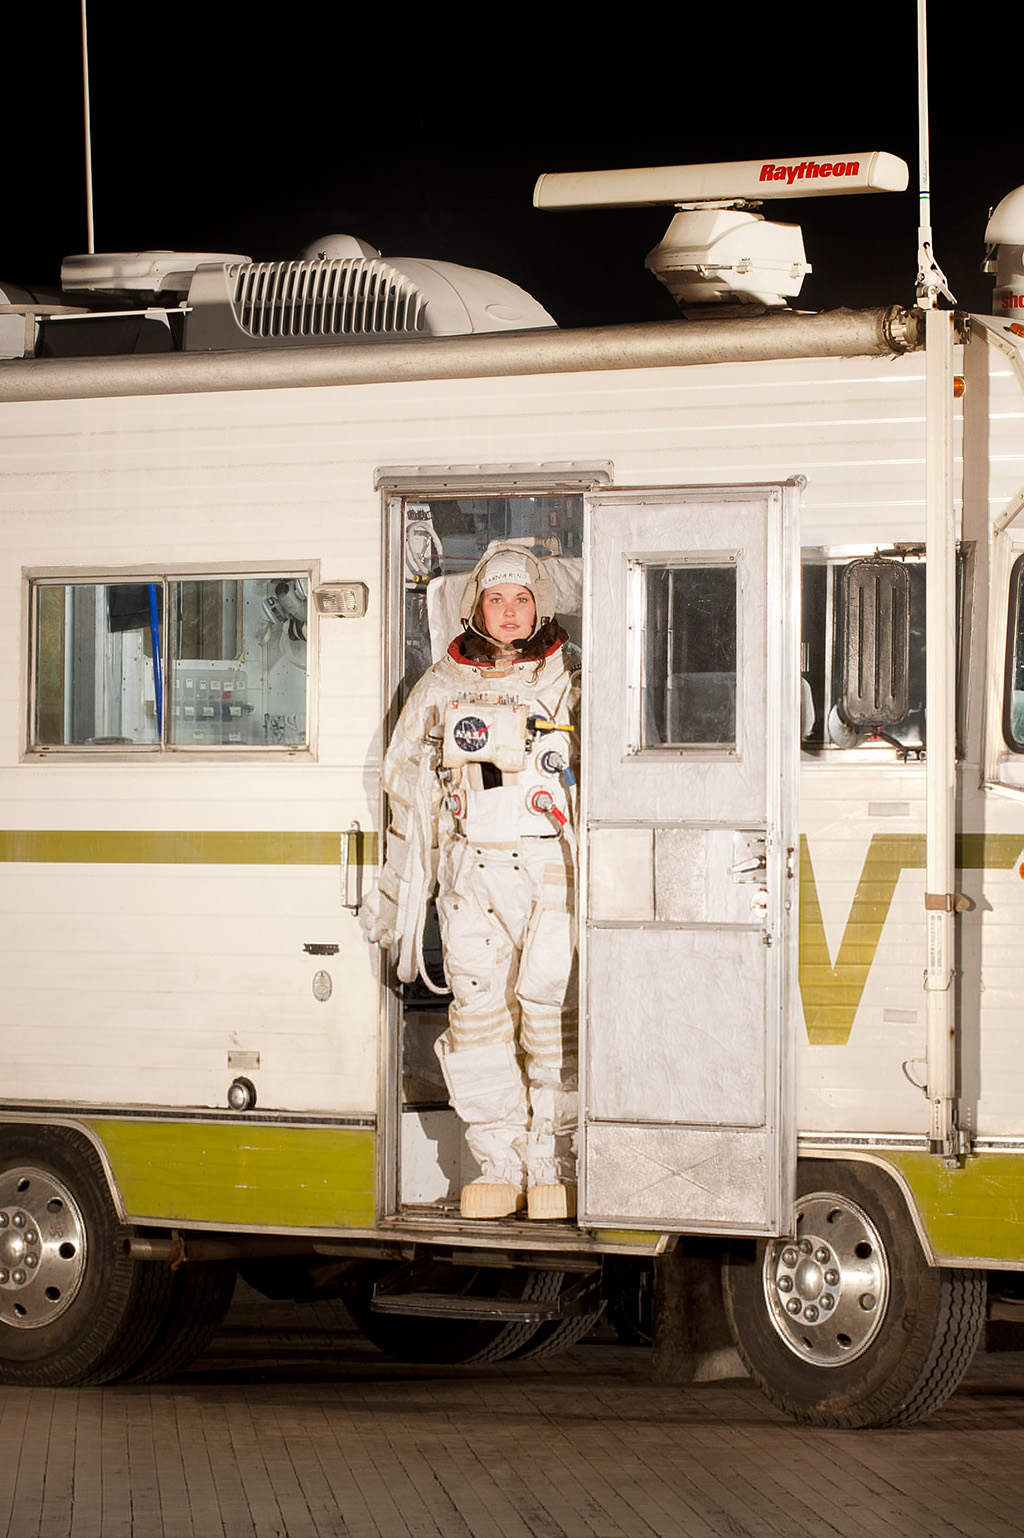 Space suit in Winnebago Brave.